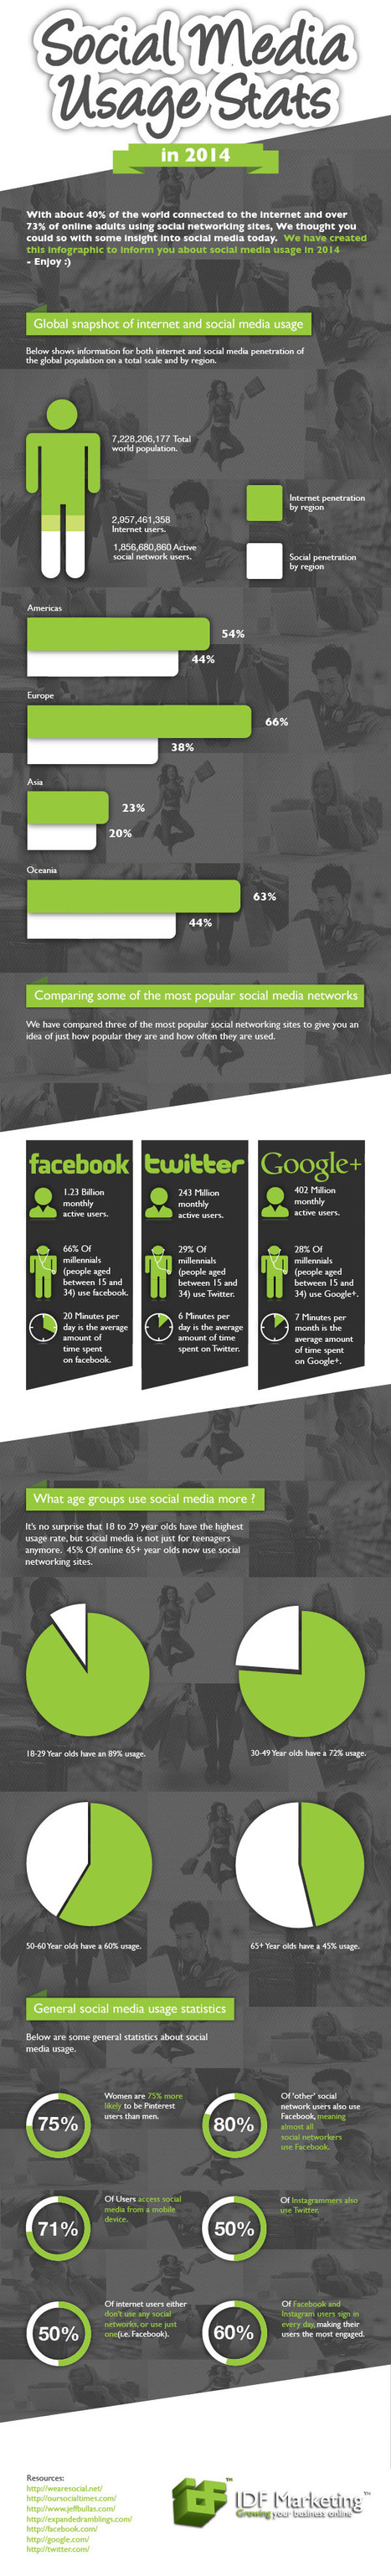 Social Media Usage Stats in 2014 [Infographic] | Better Safety | Scoop.it